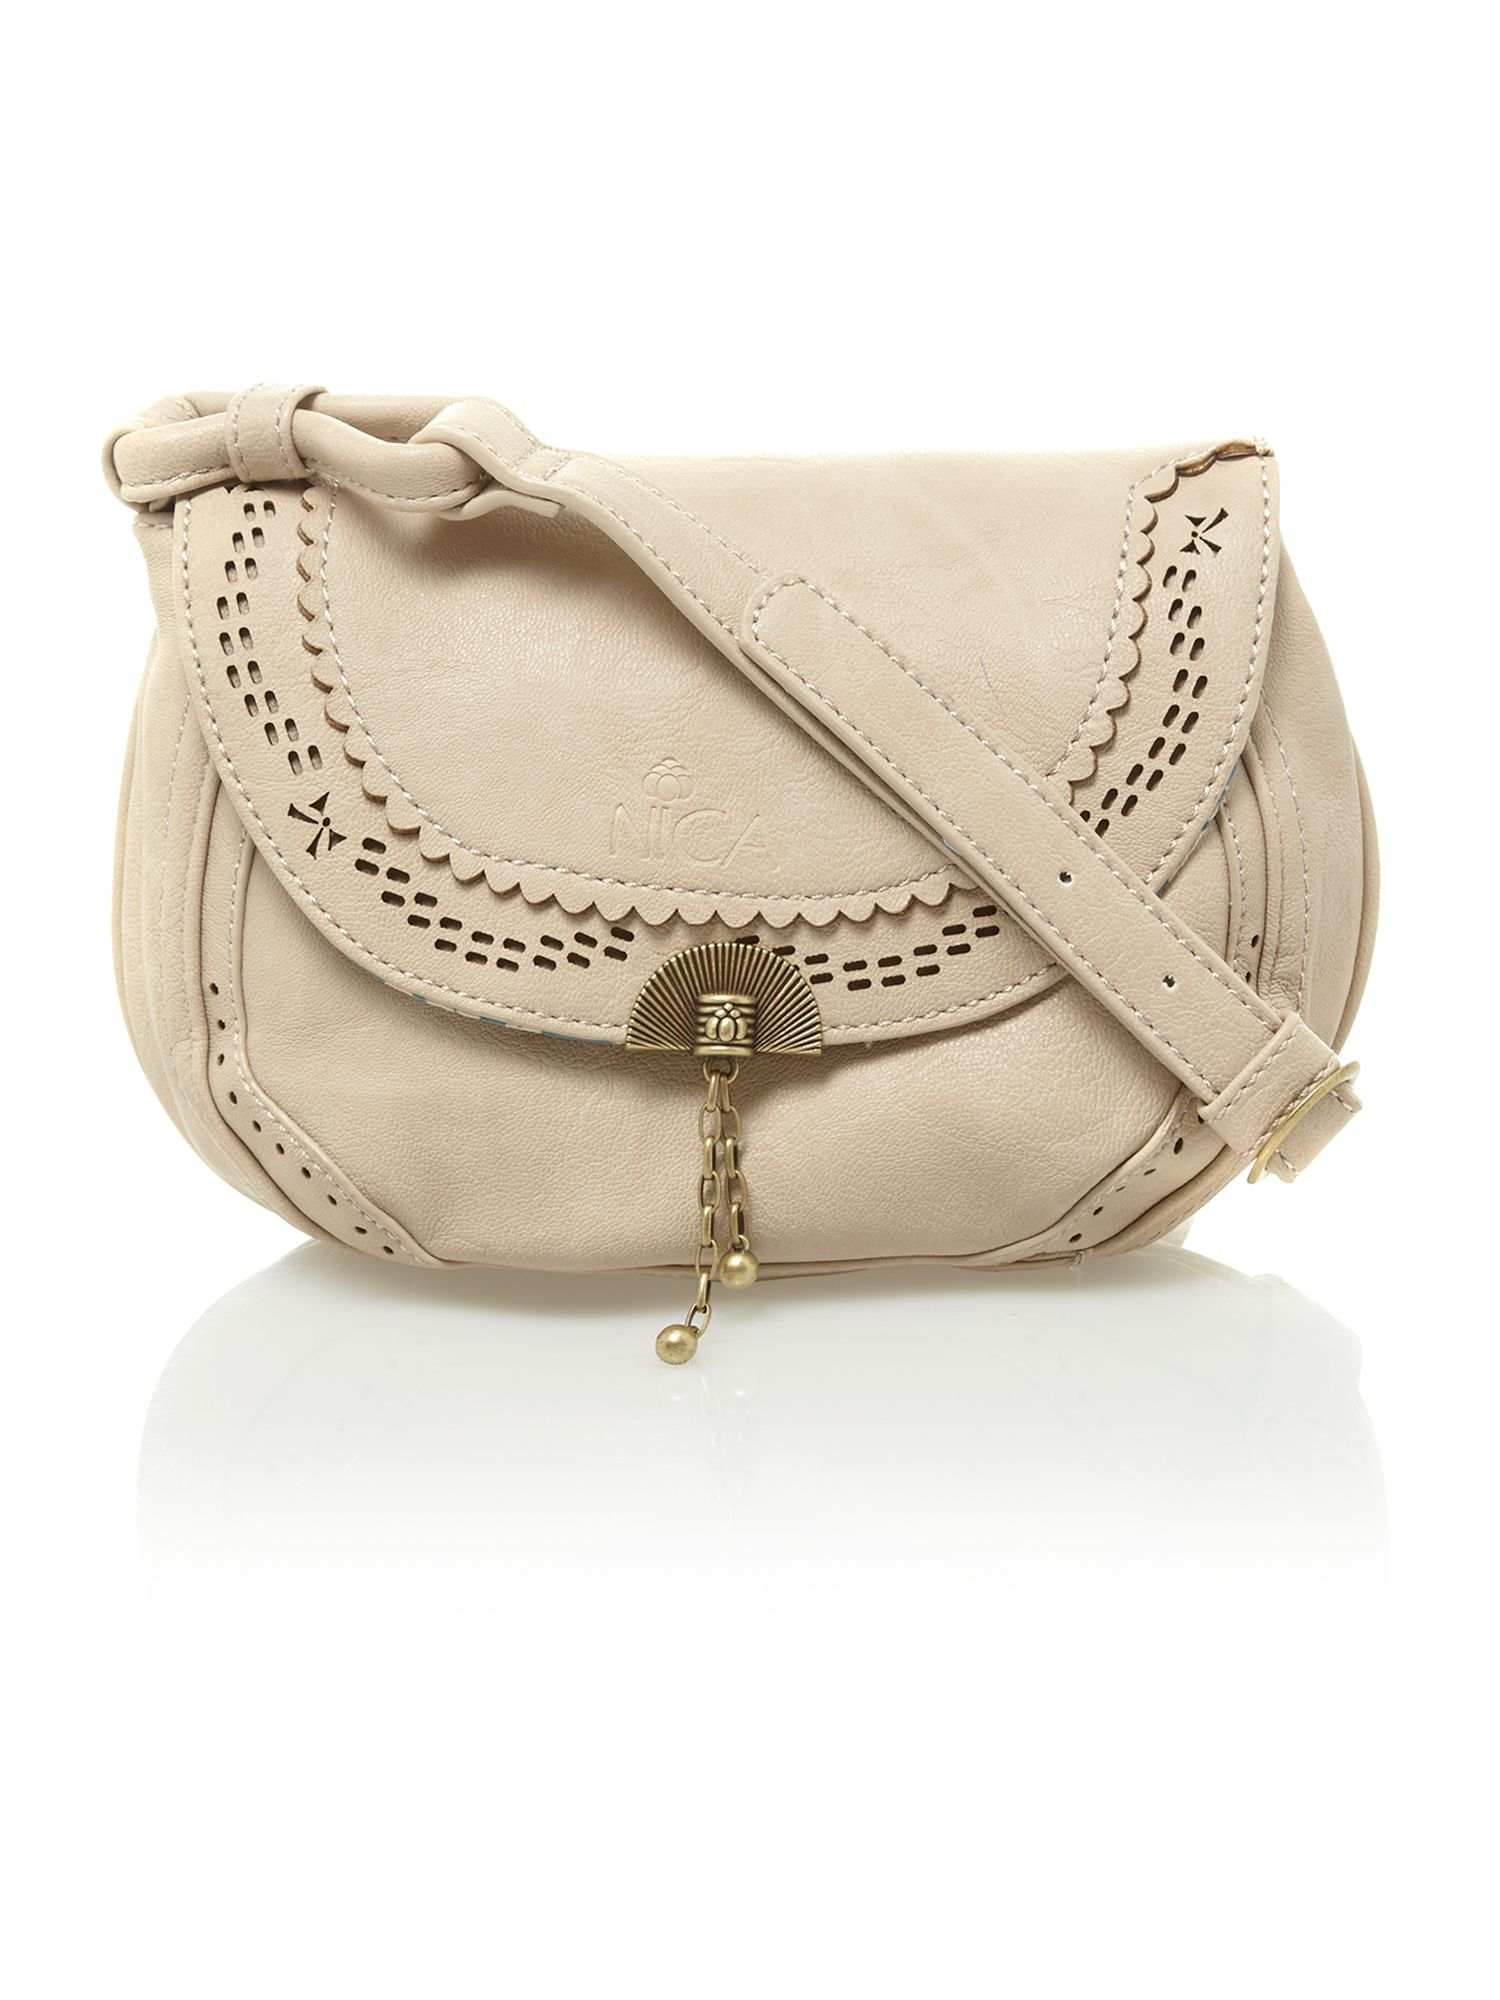 Neutral crossbody bag